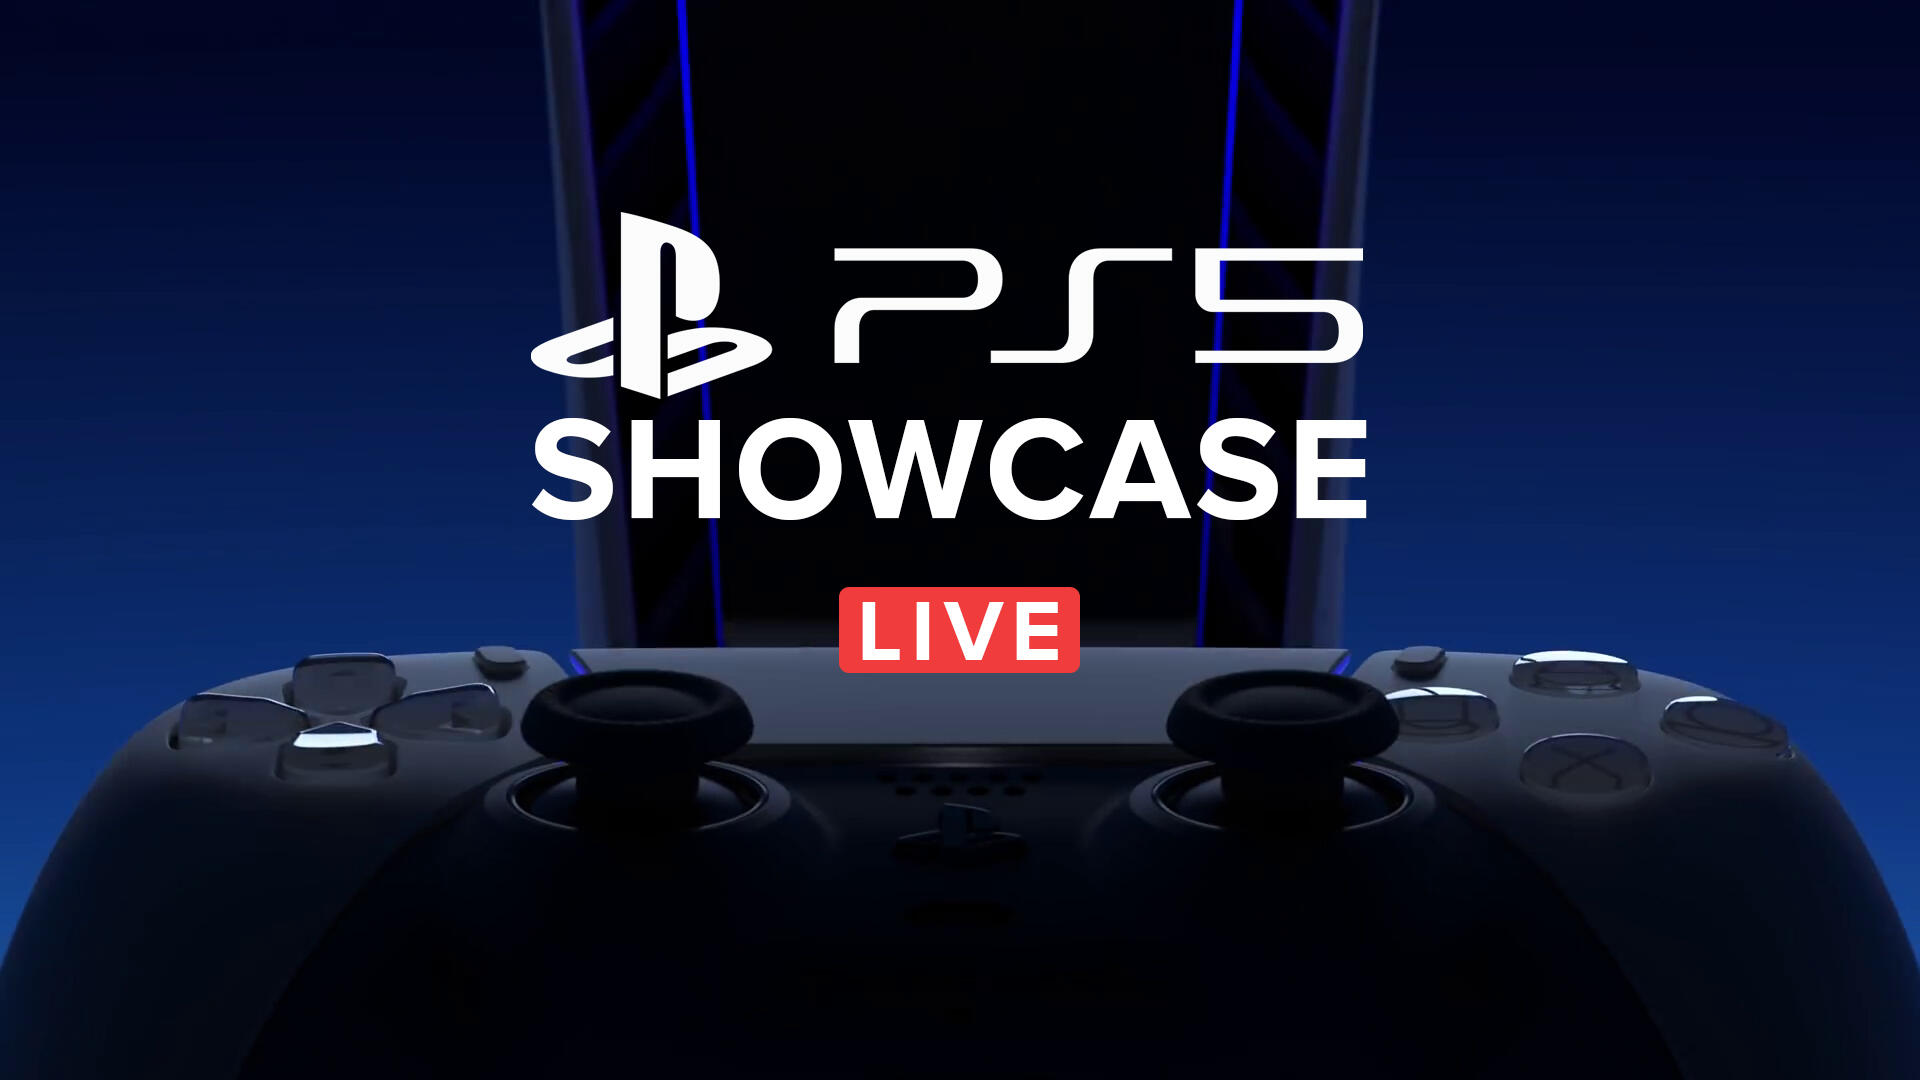 Sony's PS5 showcase event